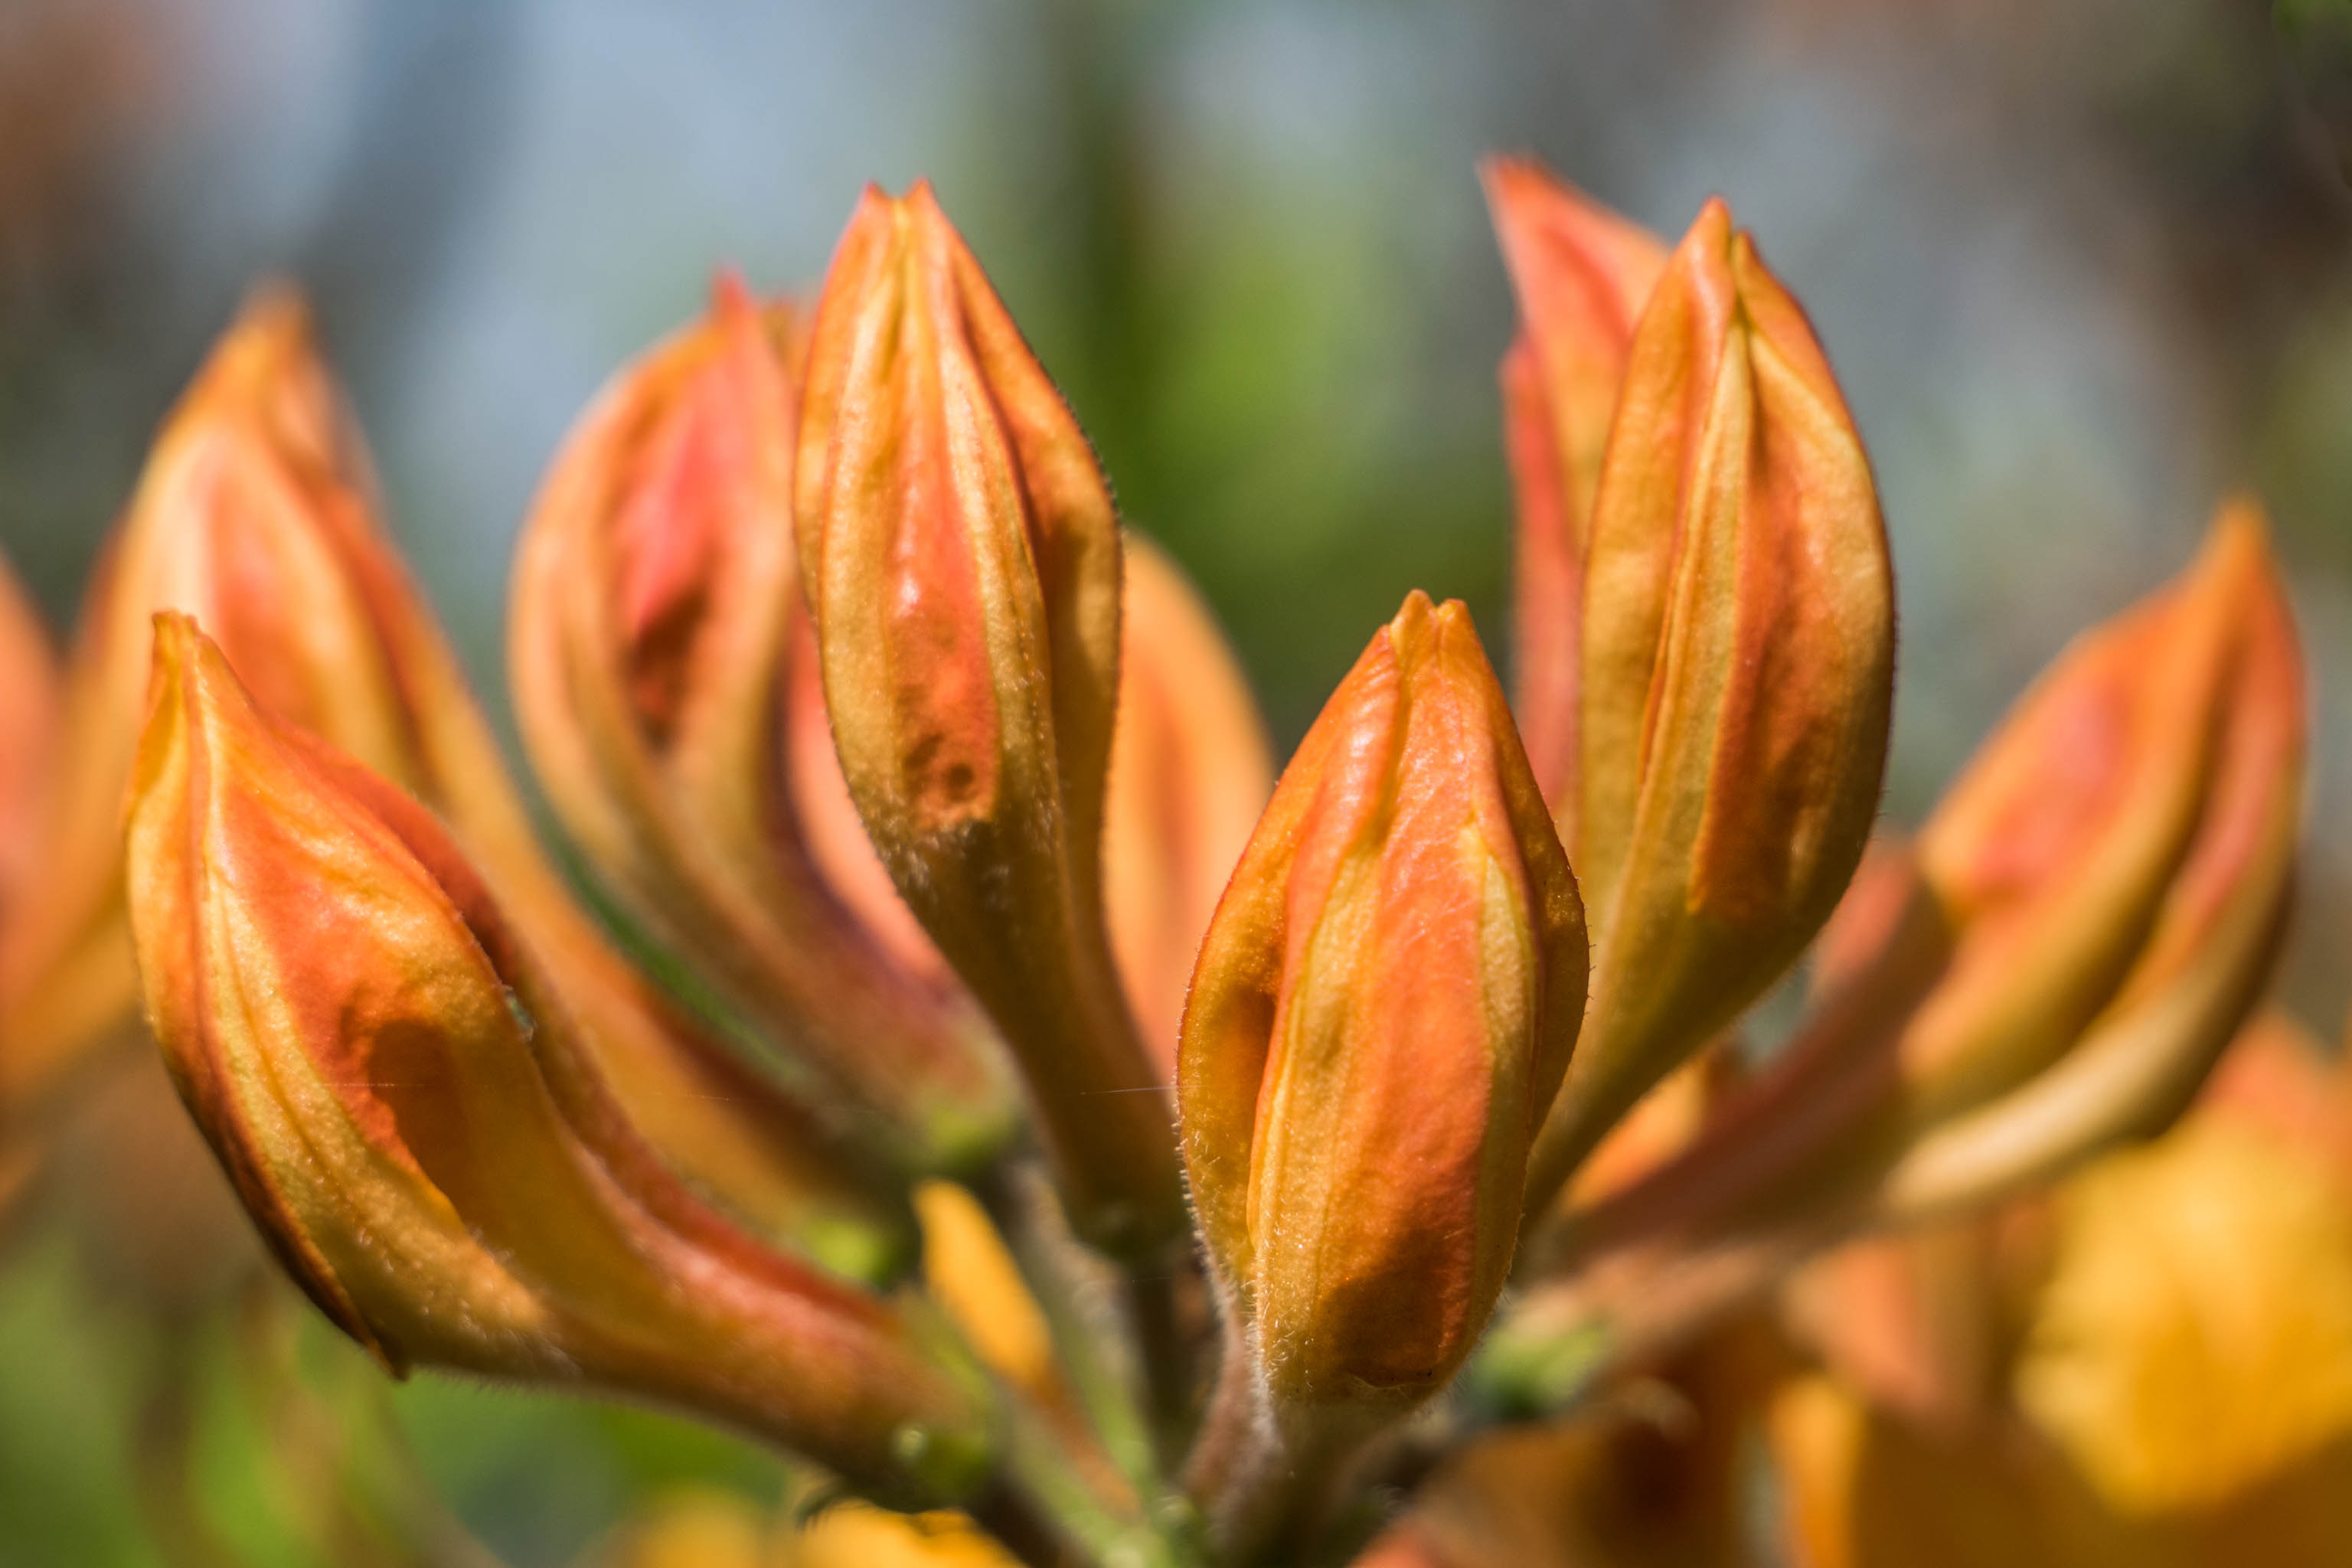 Rhododendron Golden Lights flower bud